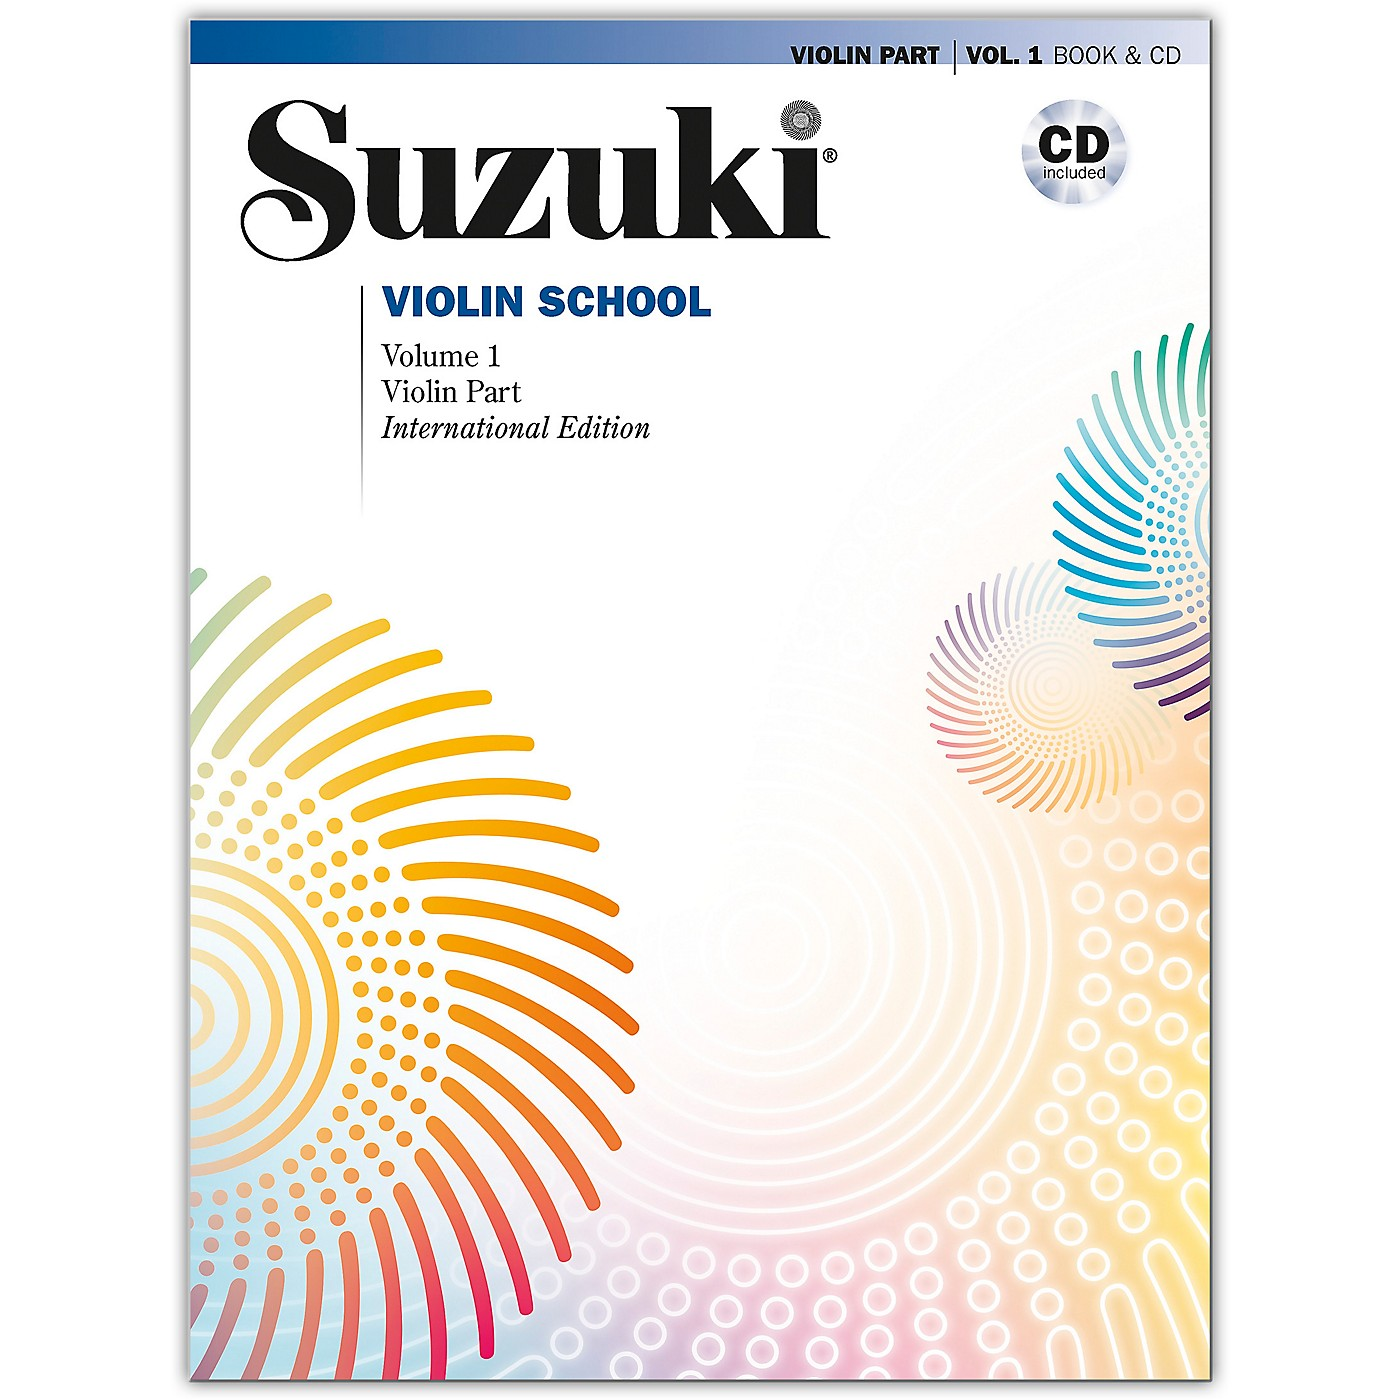 Suzuki Suzuki Violin School, Volume 1 Book & CD thumbnail